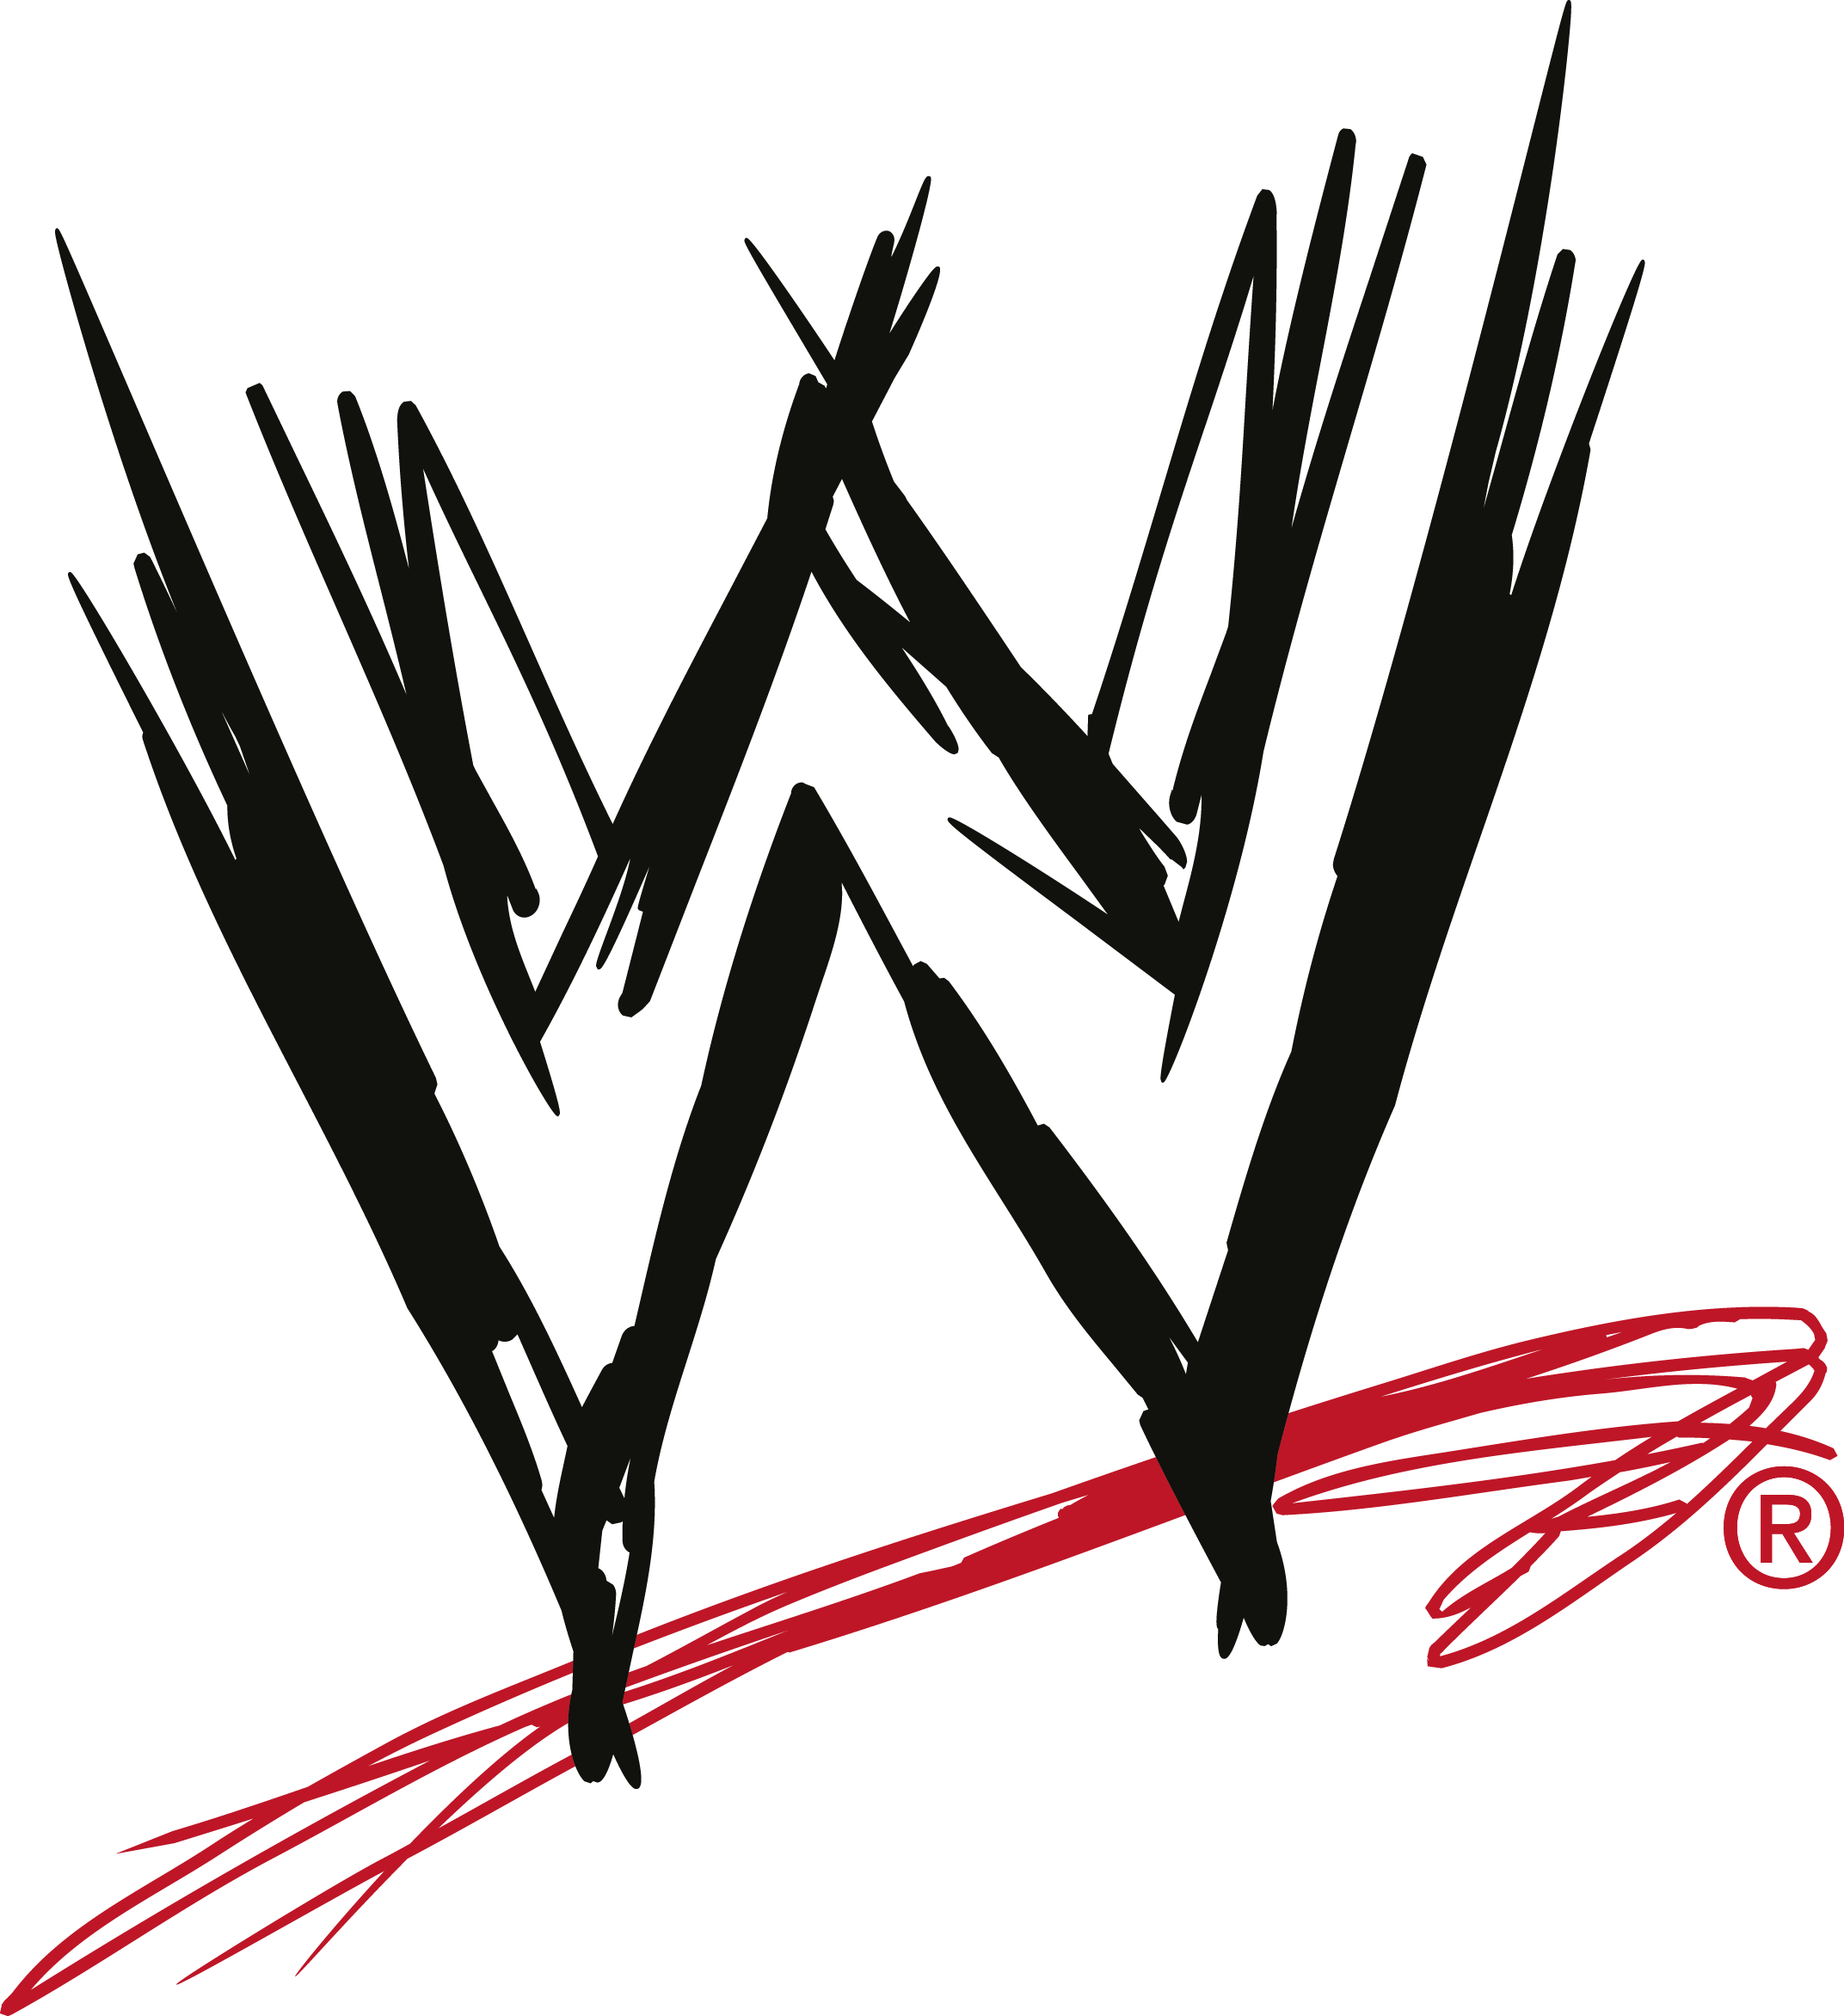 Logo world wrestling entertainment. Wrestlers clipart wwe divas